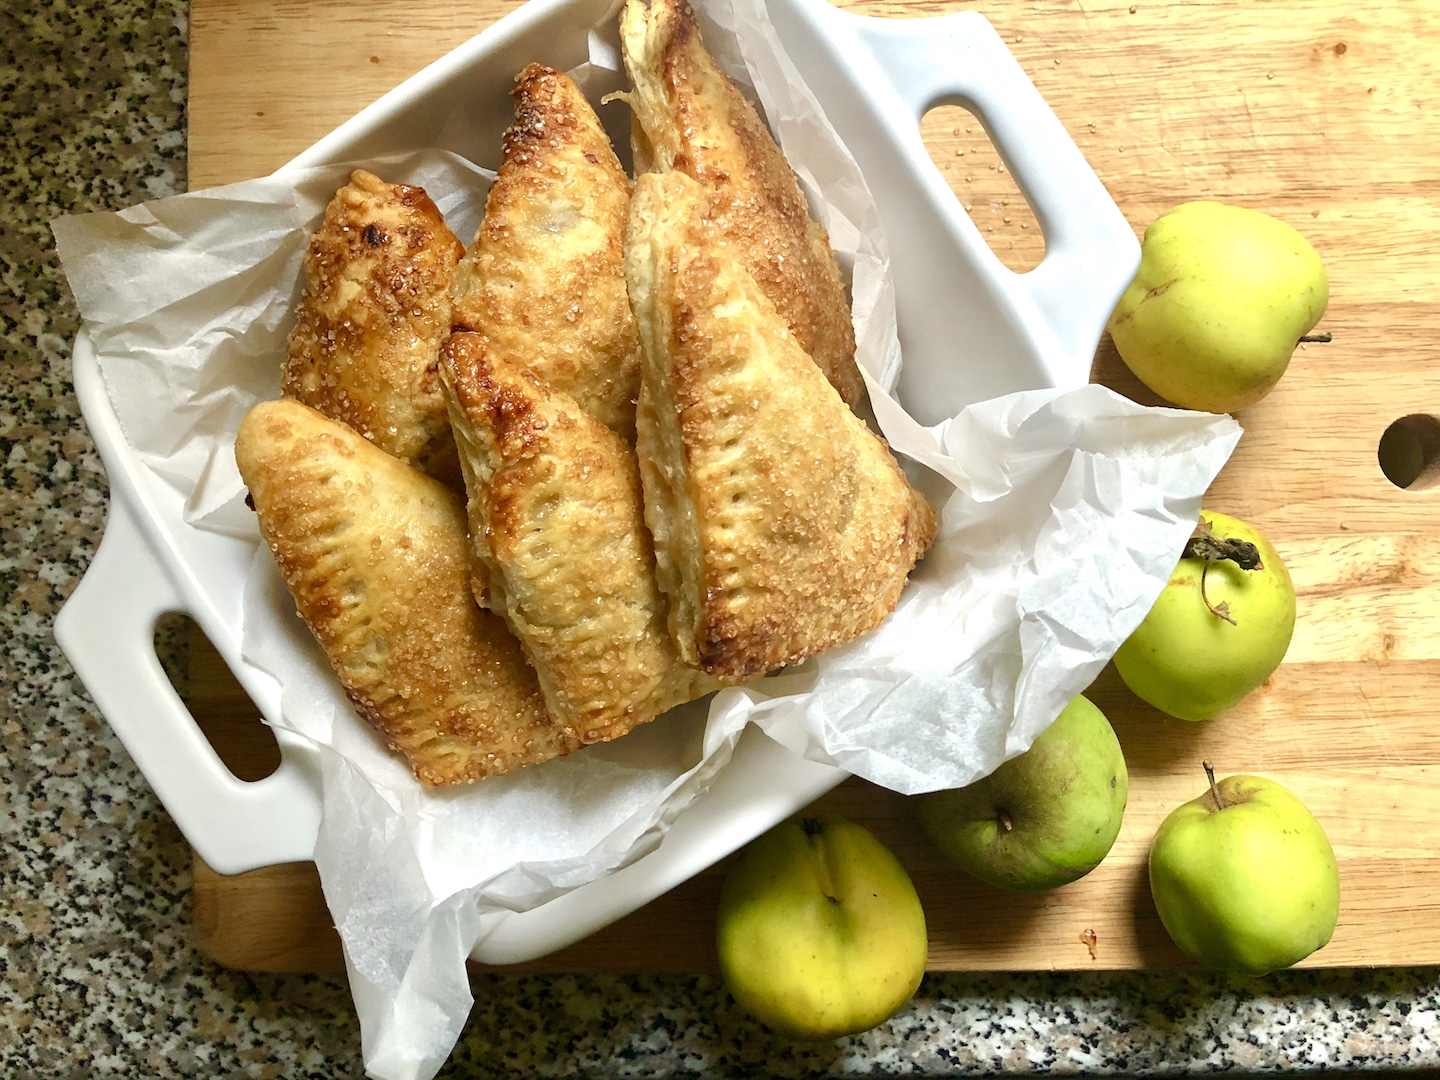 Toffee Apple Turnovers